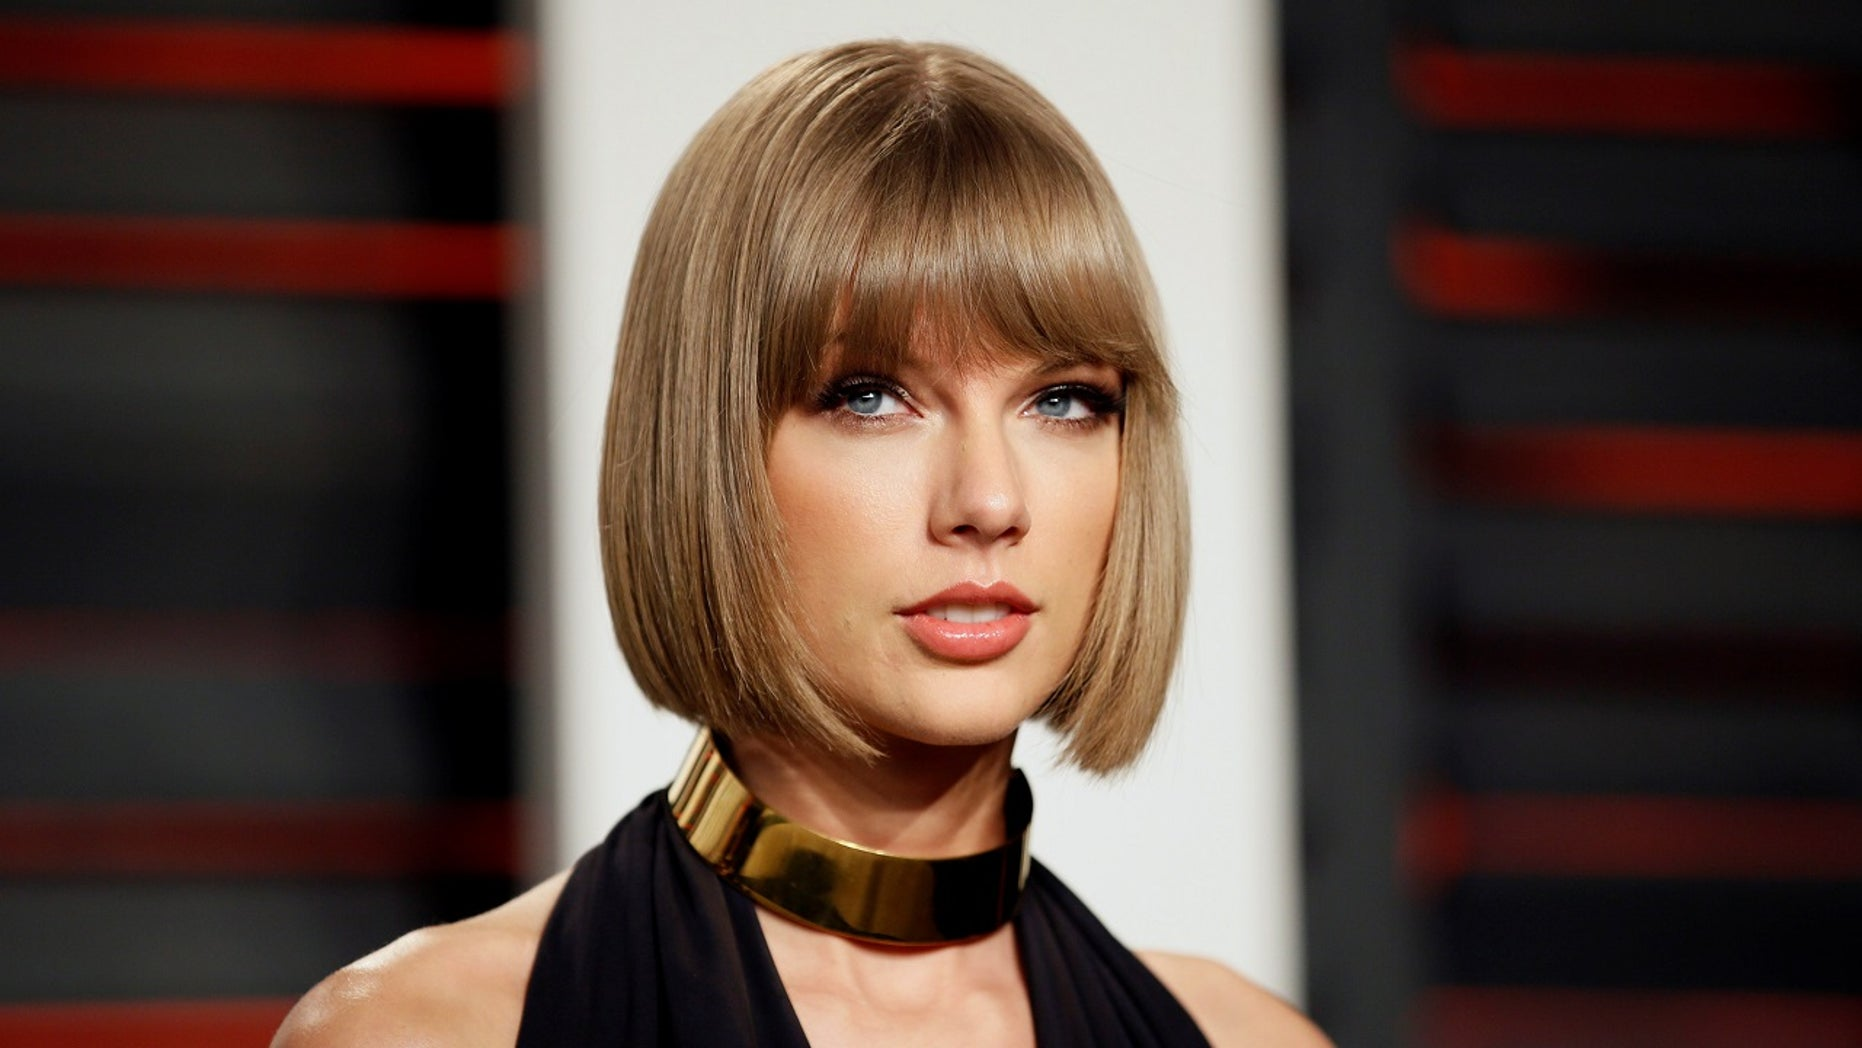 Former radio DJ David Mueller was ordered to pay Taylor Swift $1 after groping trial ruled in favor of the singer.